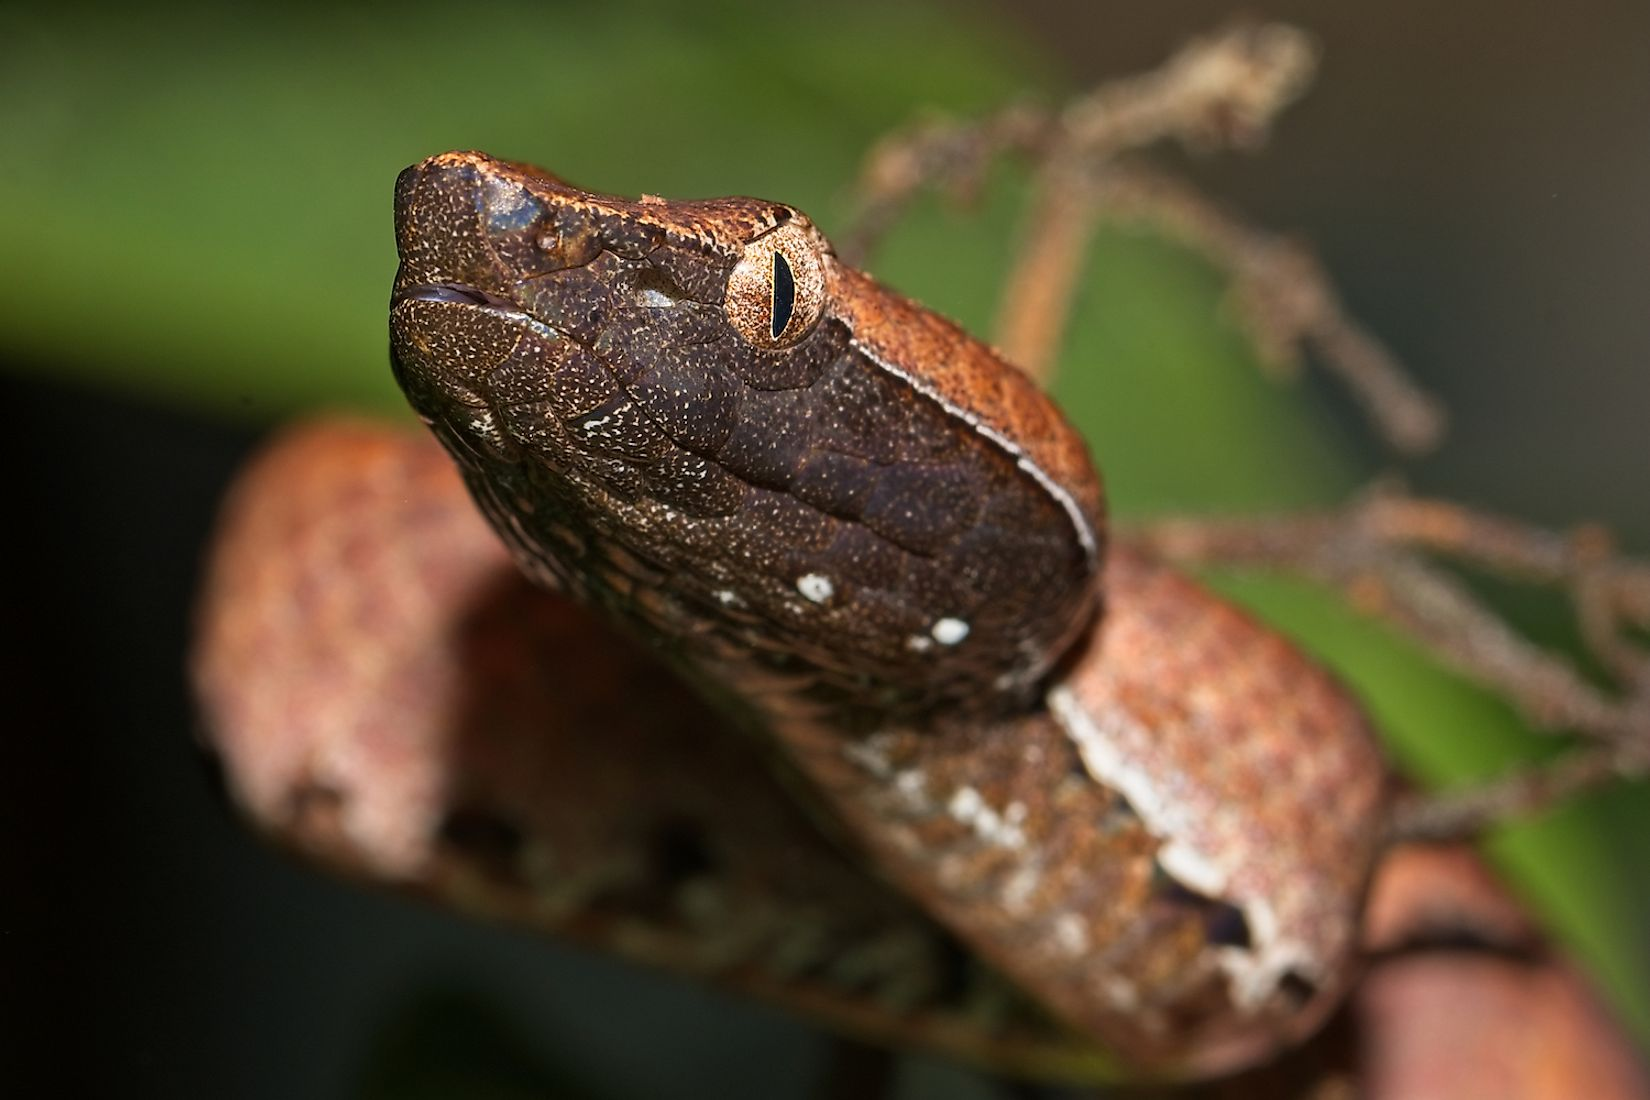 Hump nosed pit viper. Image credit: Ananth-tp